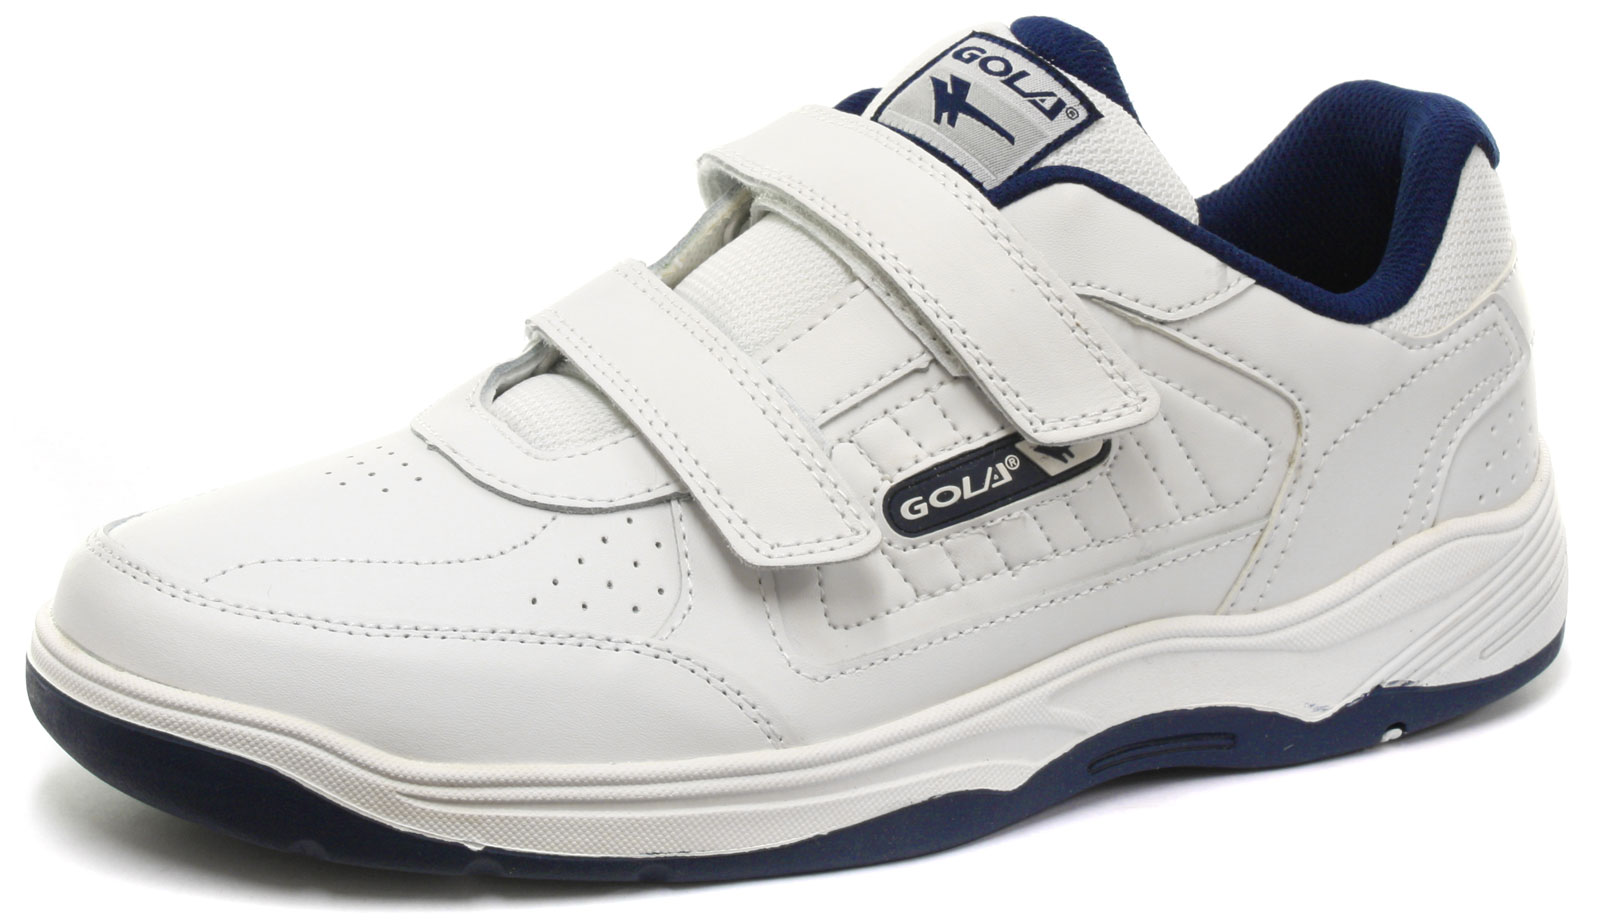 New Gola Gola Gola Belmont Velcro WF  s Wide Fit Trainers ALL SIZES AND COLOURS f519b7